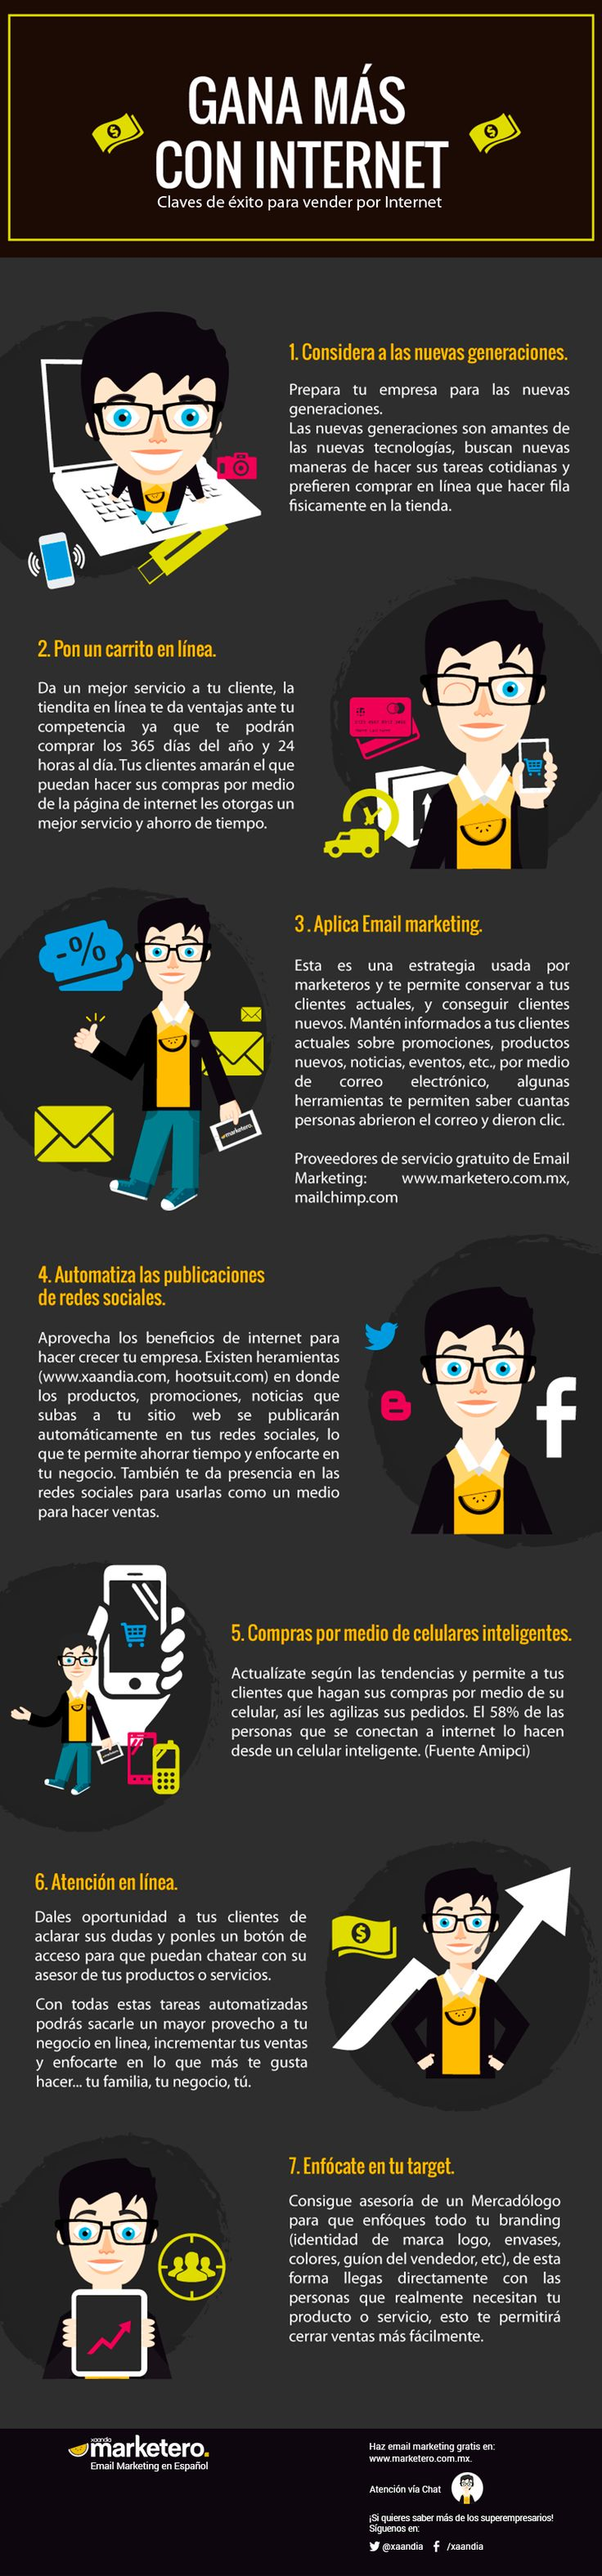 7 CLAVES PARA VENDER POR INTERNET #INFOGRAFIA #INFOGRAPHIC #MARKETING